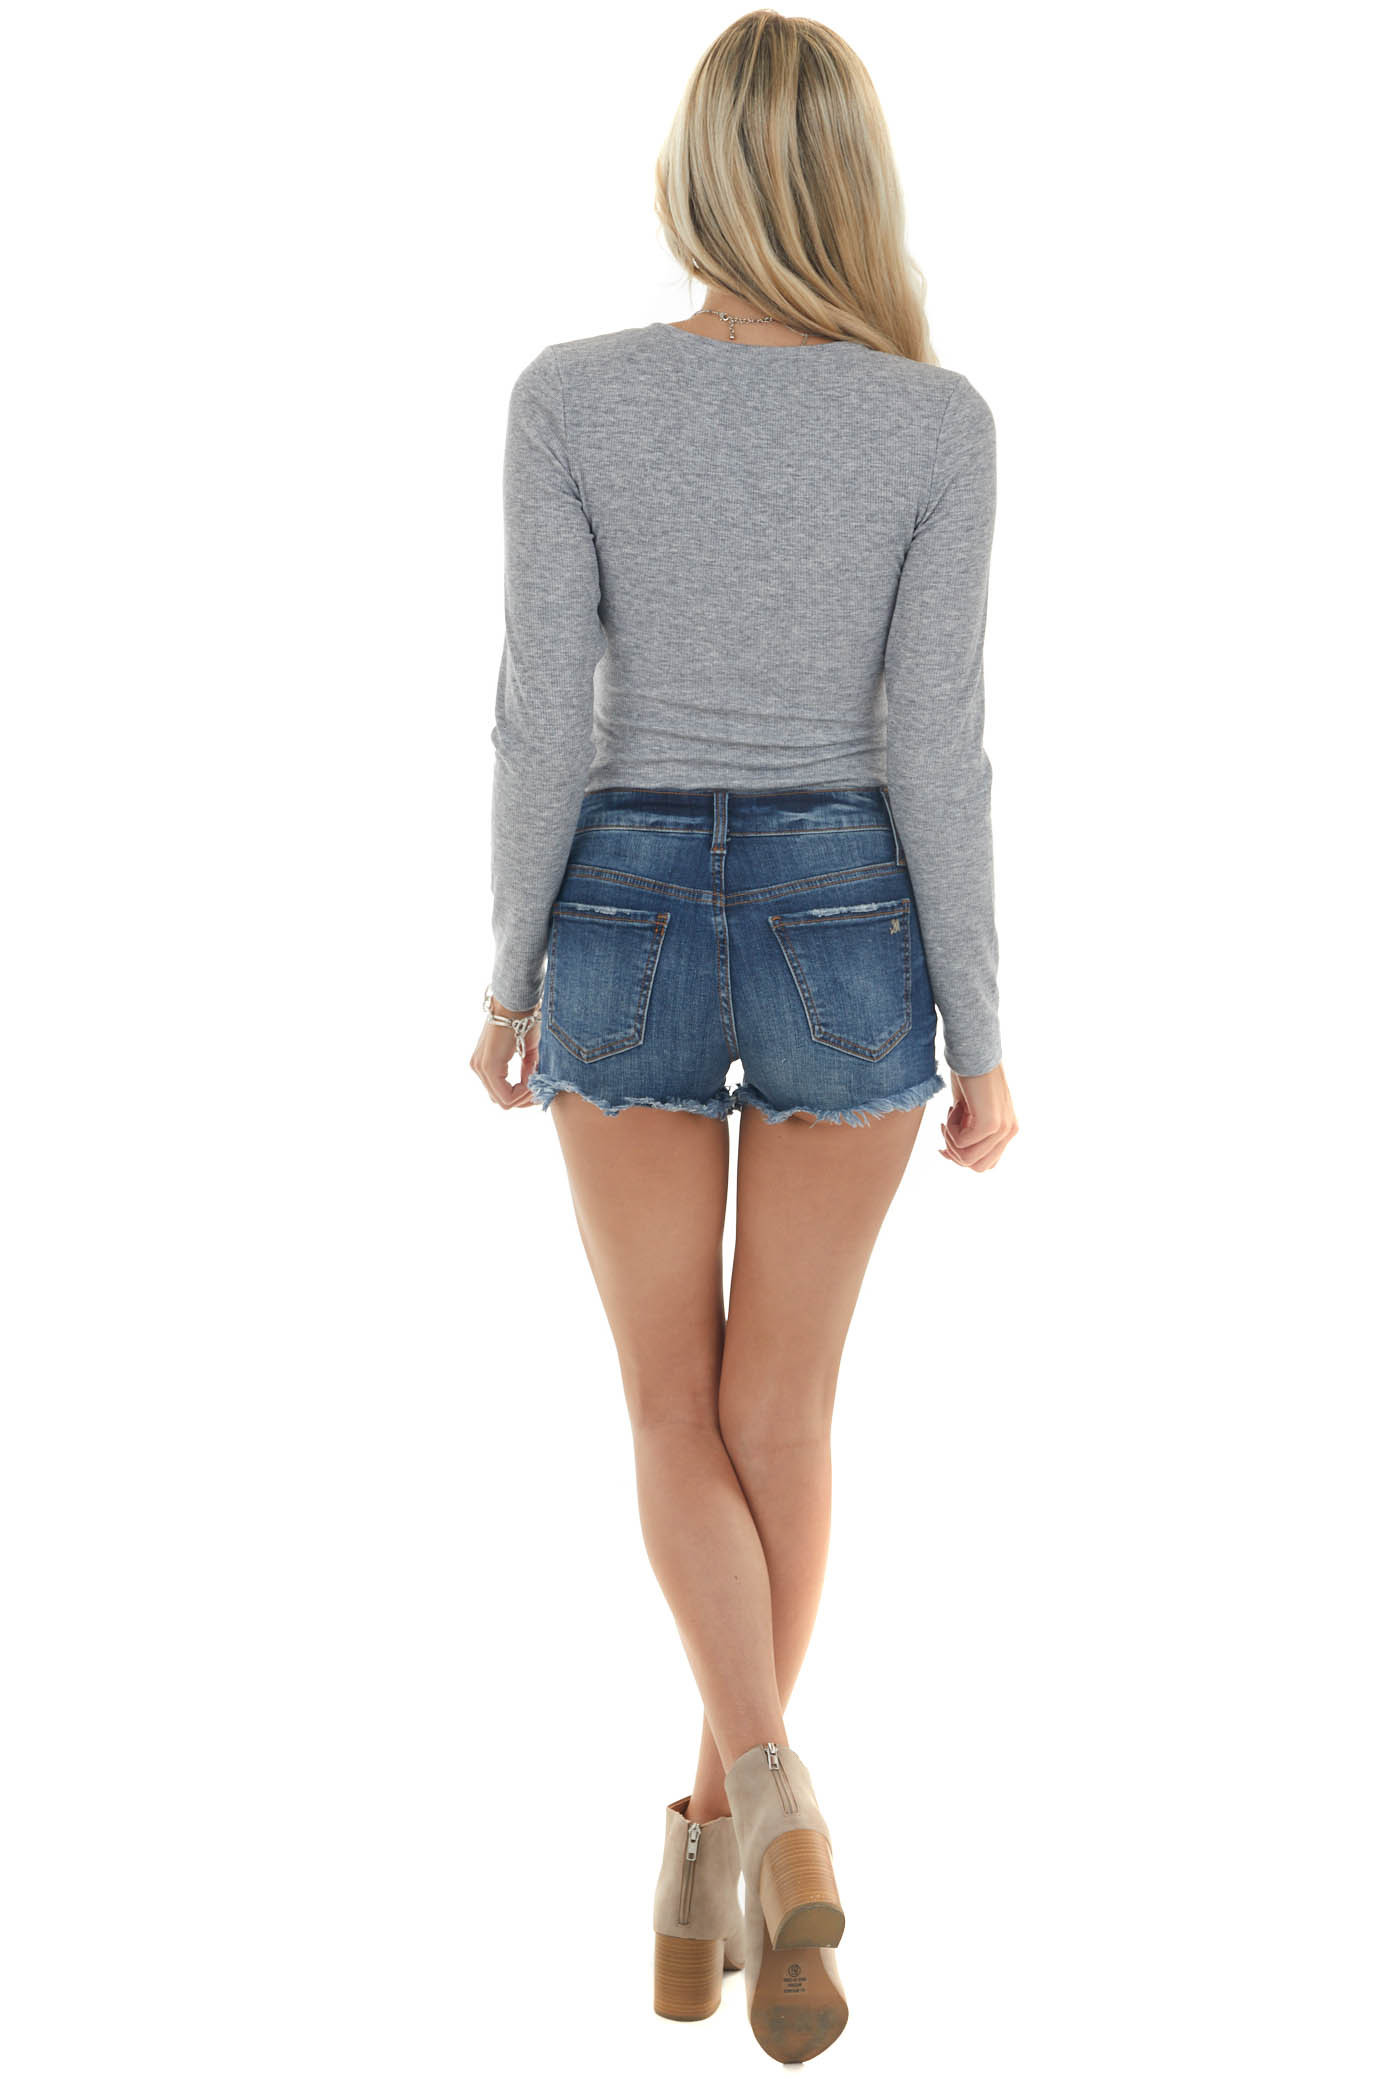 Heather Grey Knit Long Sleeve Bodysuit with Button Details